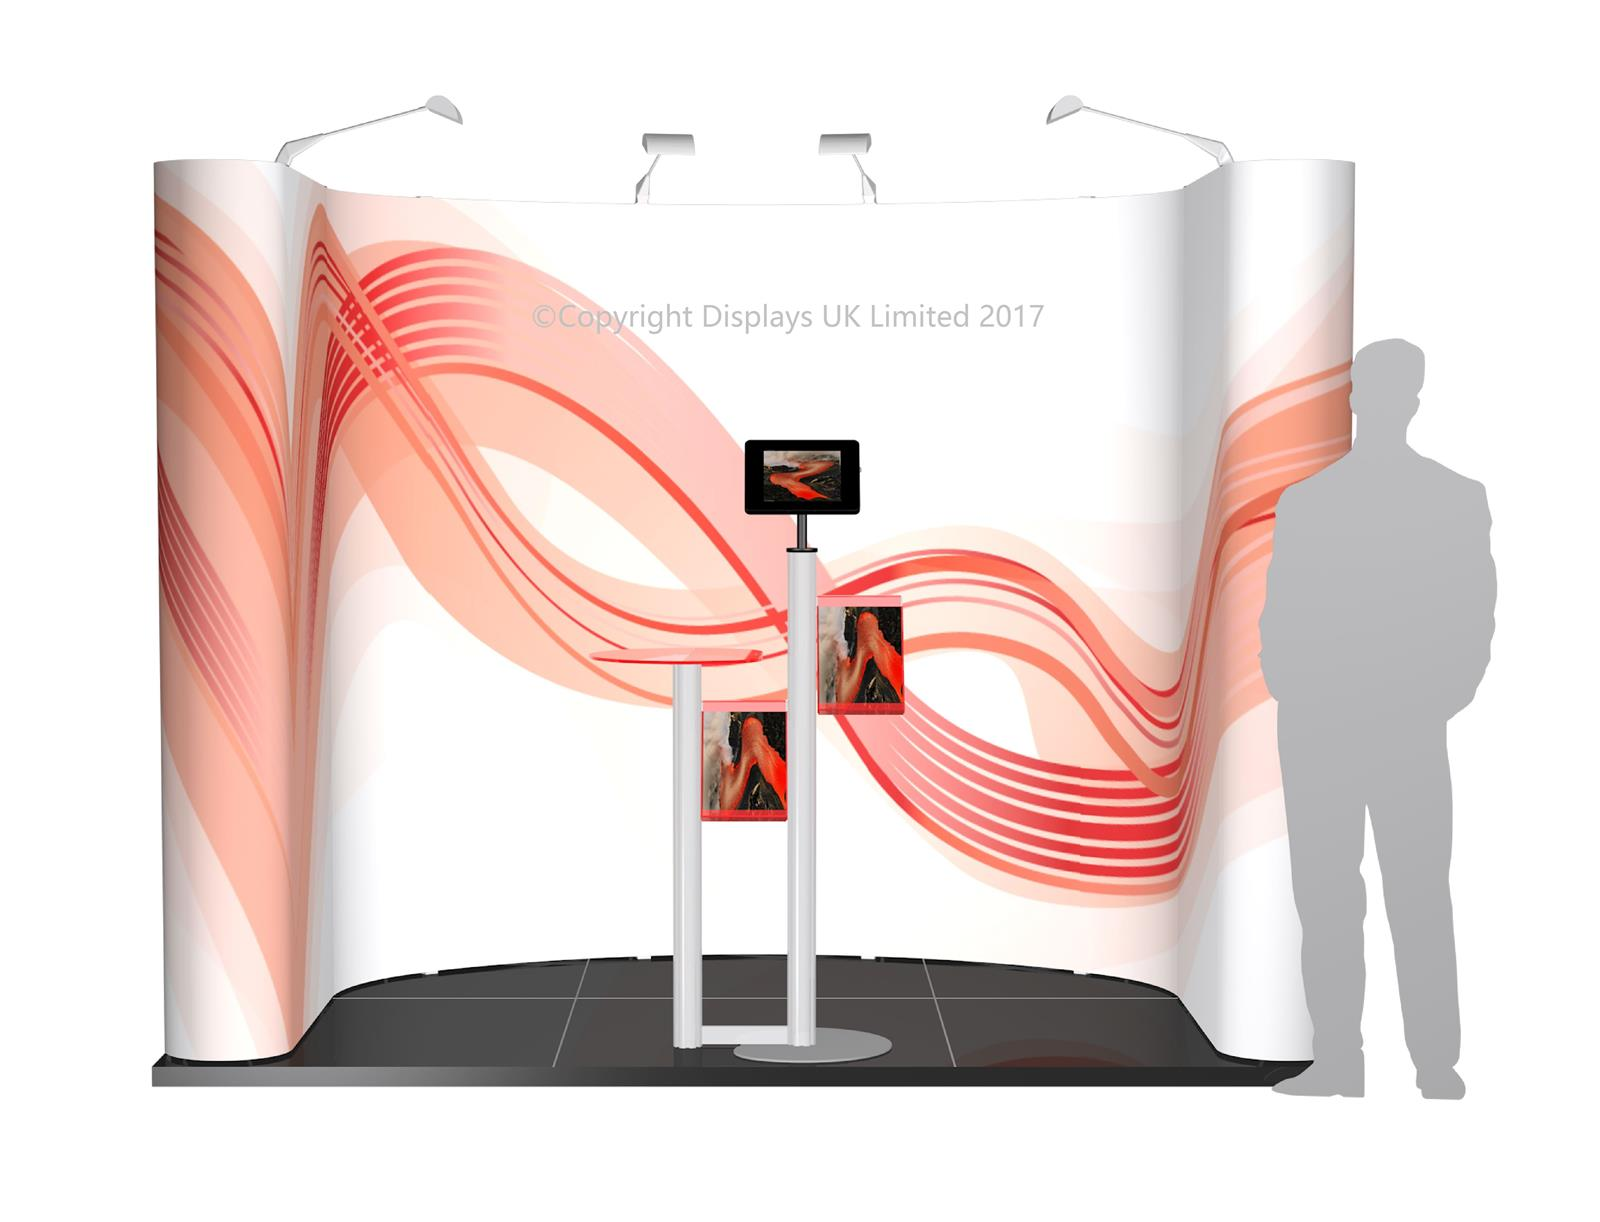 3m x 2m Linked Pop Up Exhibition Stand - Kit 2 -P3x2-1aC